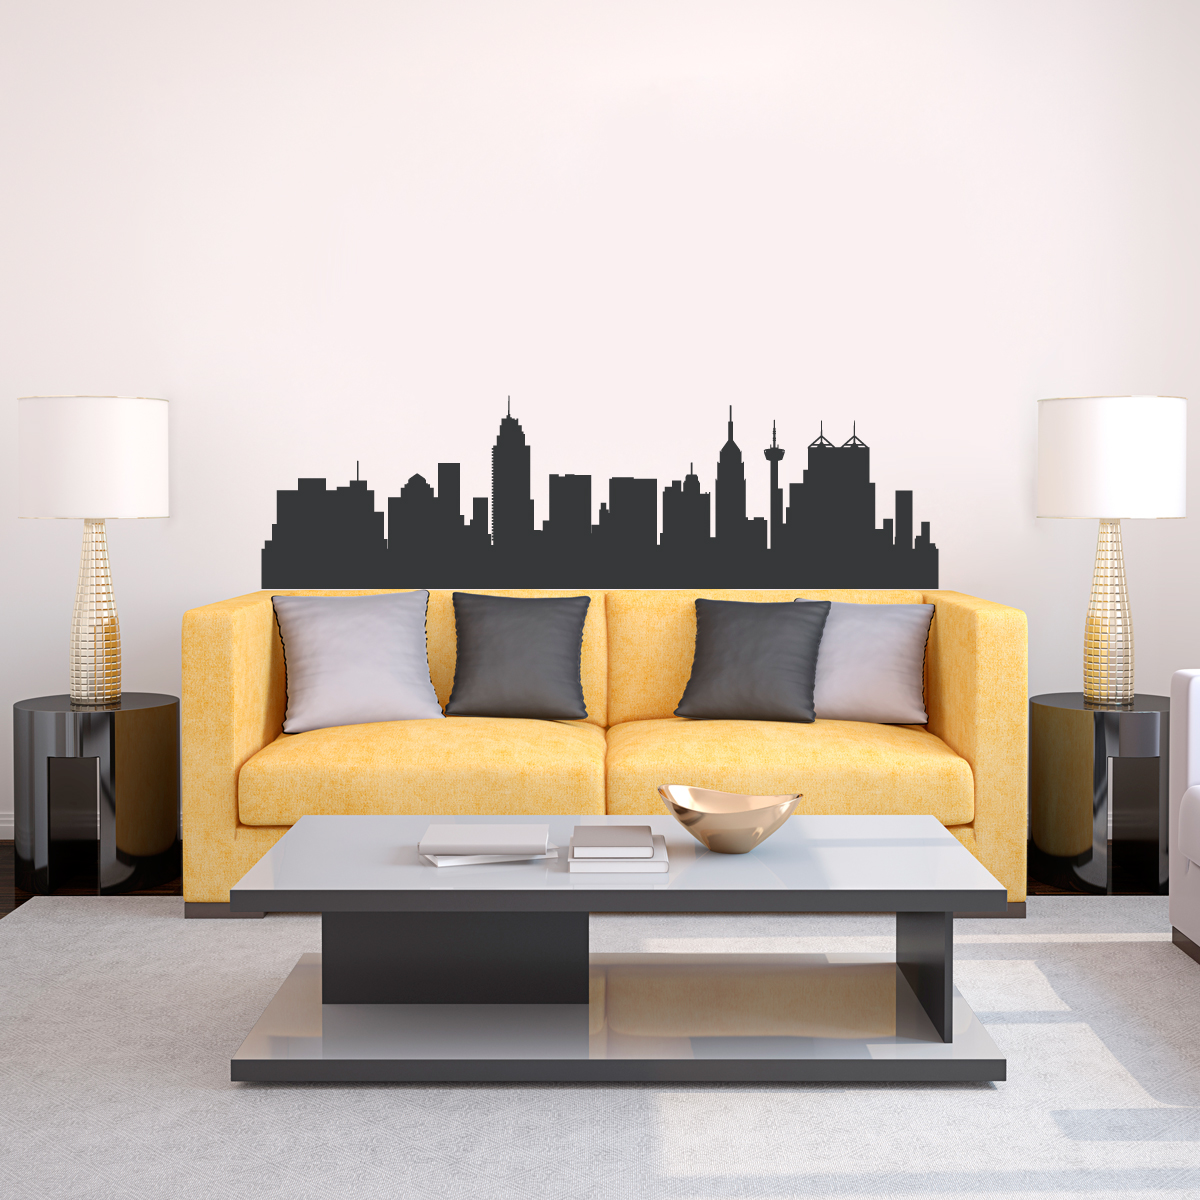 San Antonio Texas Skyline Vinyl Wall Decal Sticker